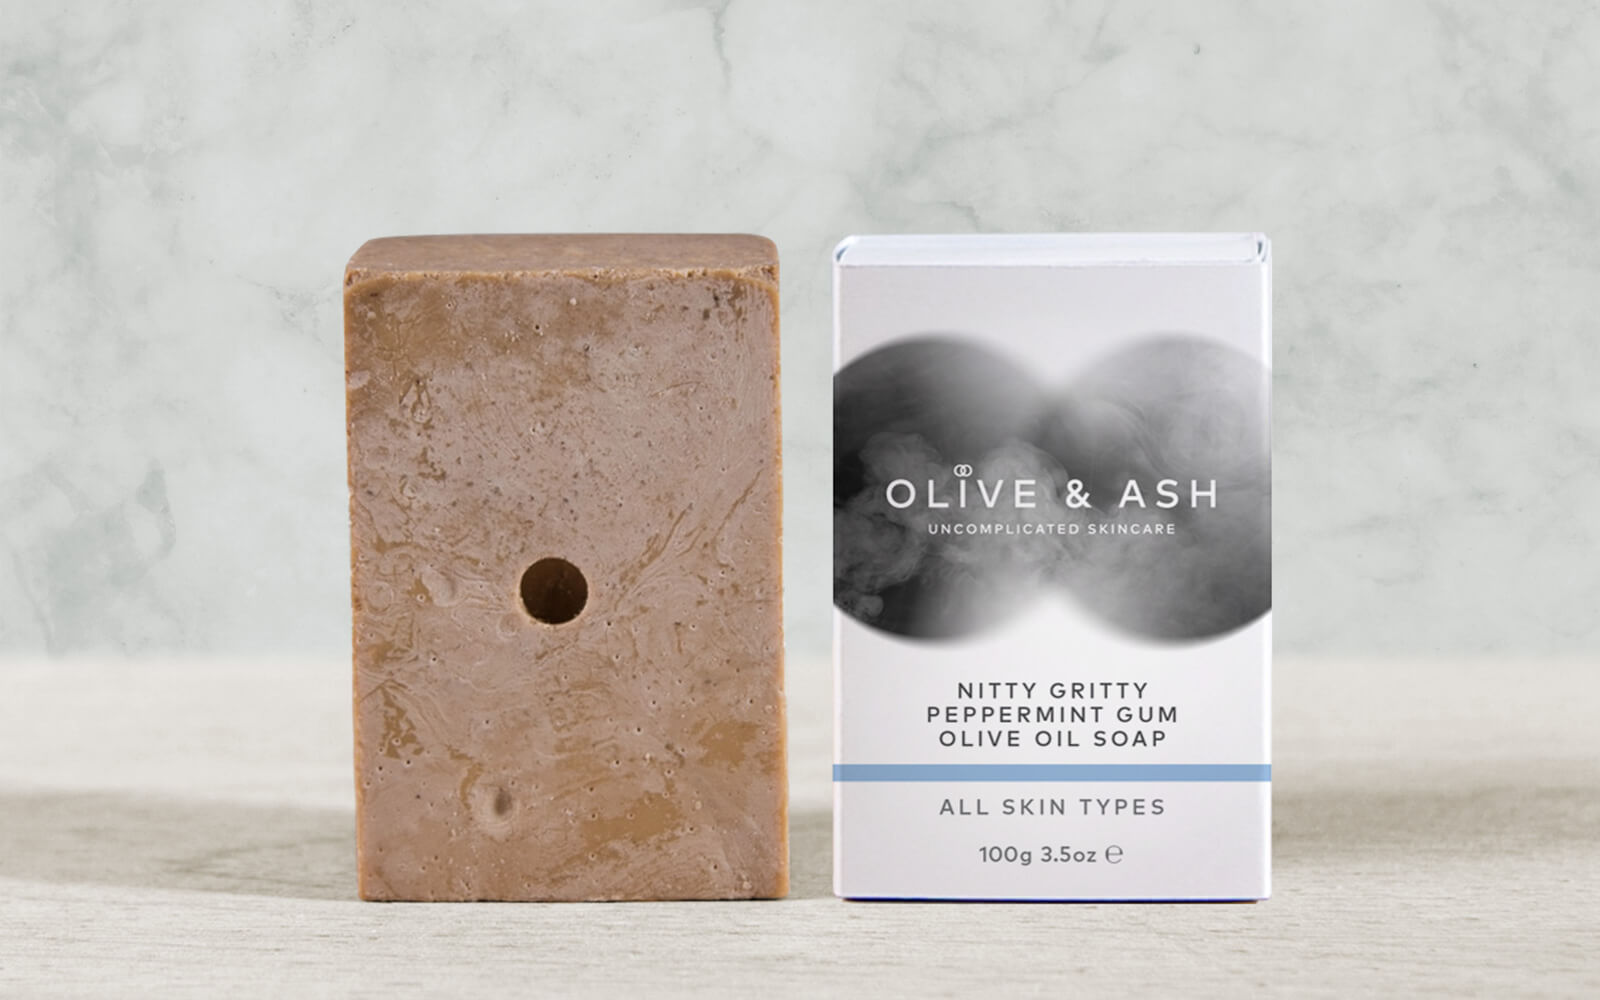 Olive & Ash Nitty Gritty Peppermint Gum Olive Oil